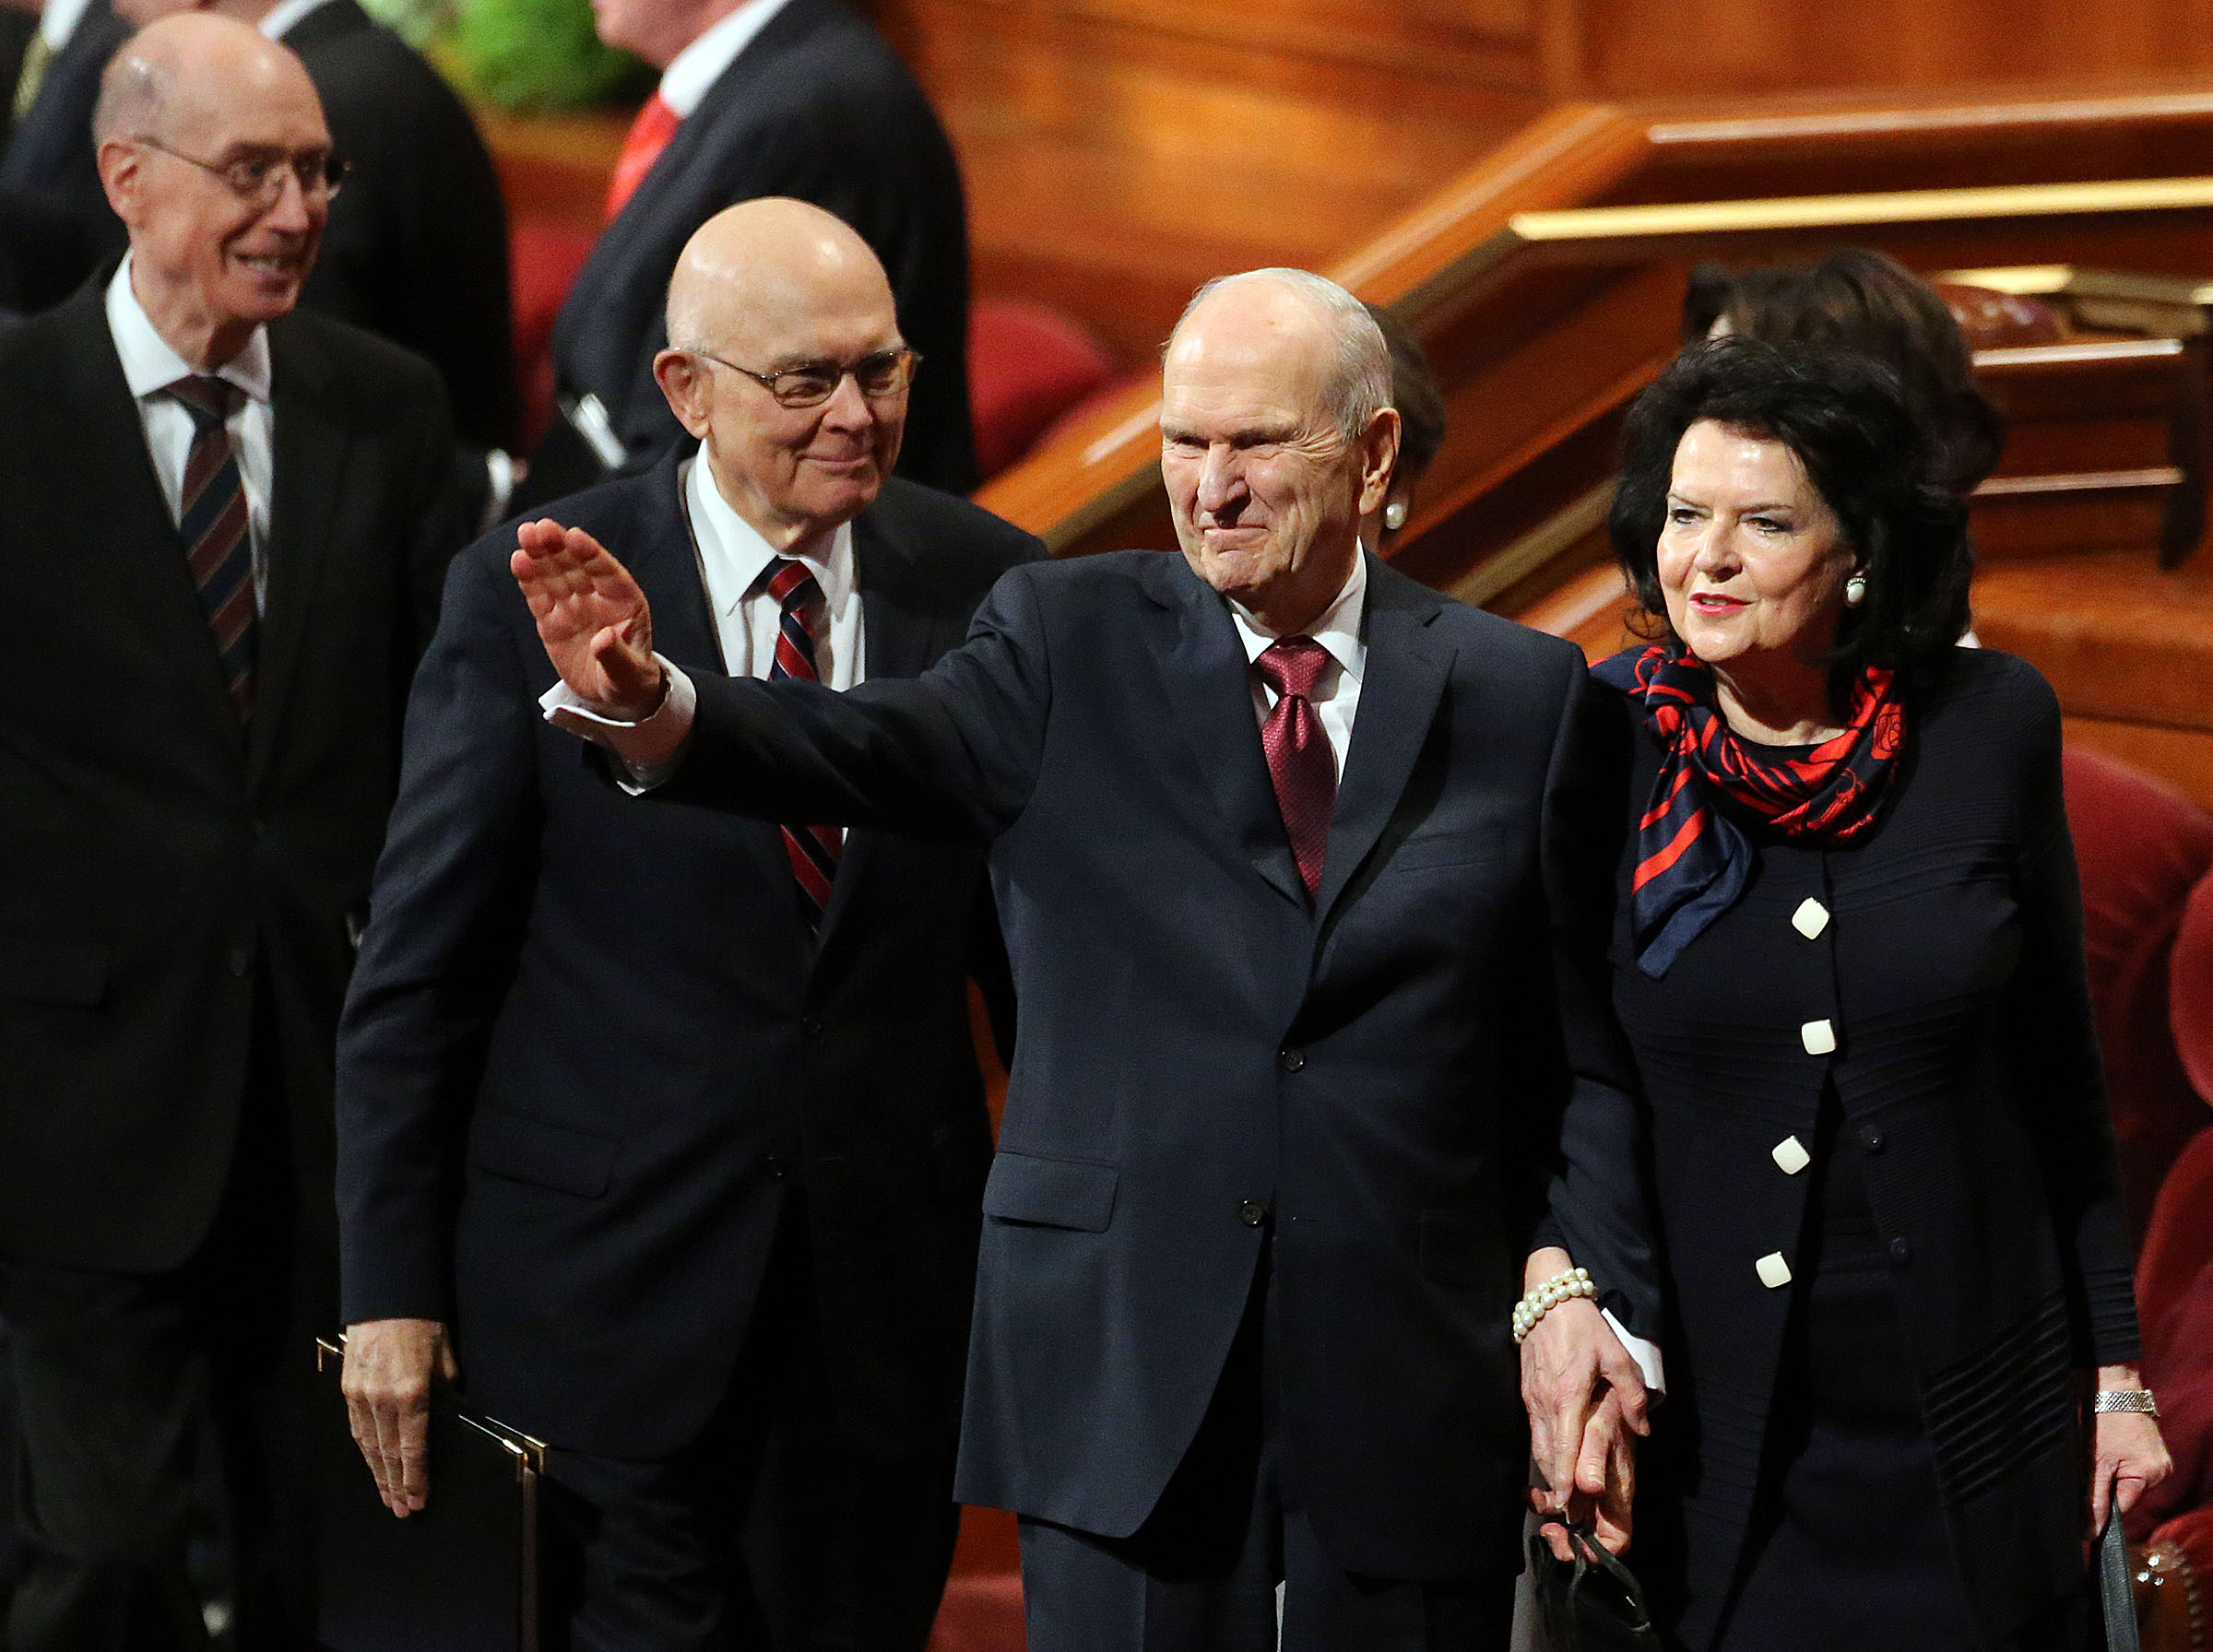 President Russell M. Nelson and his wife, Sister Wendy Nelson, leave the Sunday morning session of the 188th Annual General Conference at the Conference Center in Salt Lake City on Sunday, April 1, 2018.